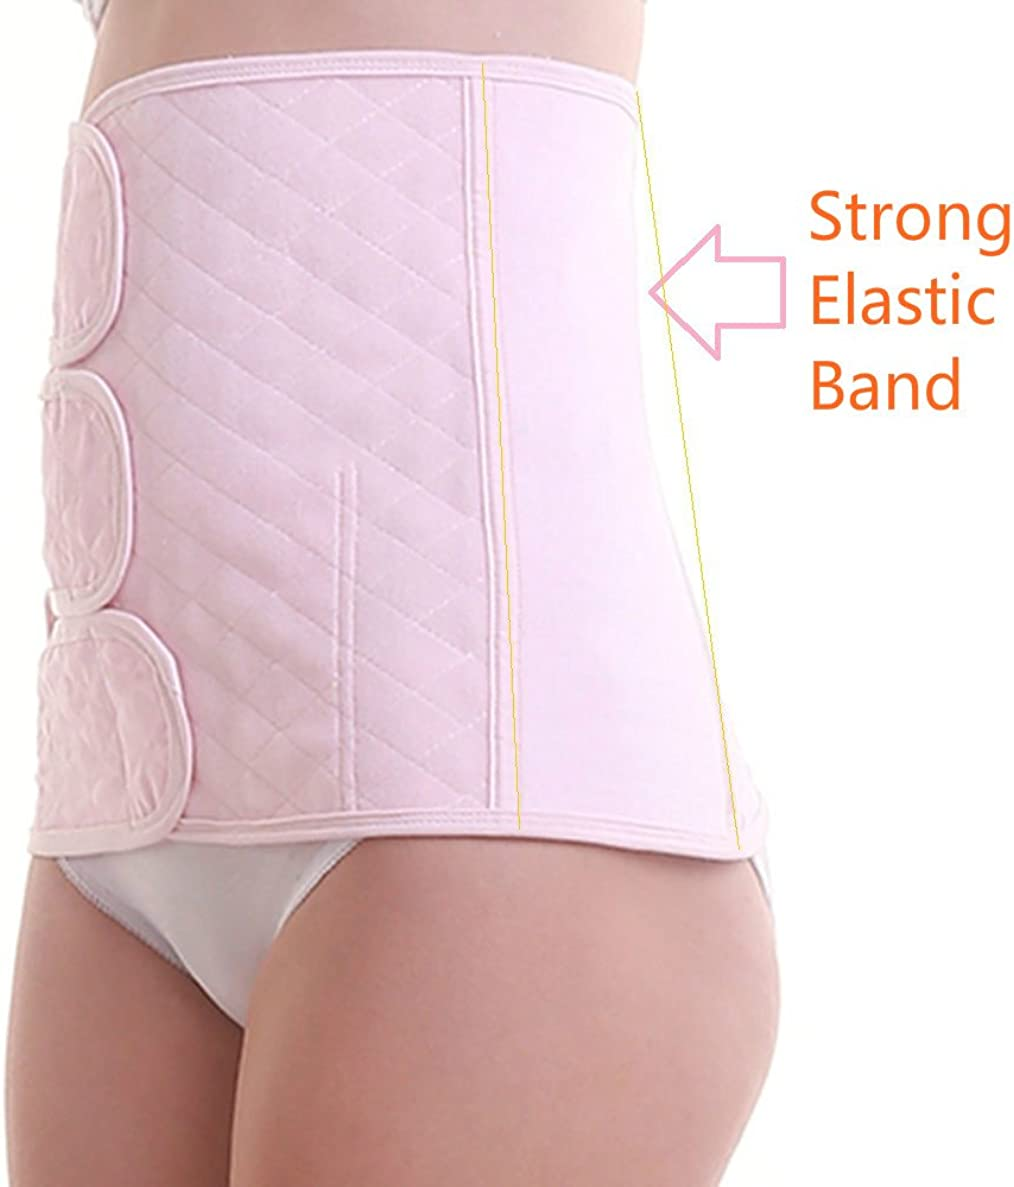 Post Belly Band Postpartum Support Recovery